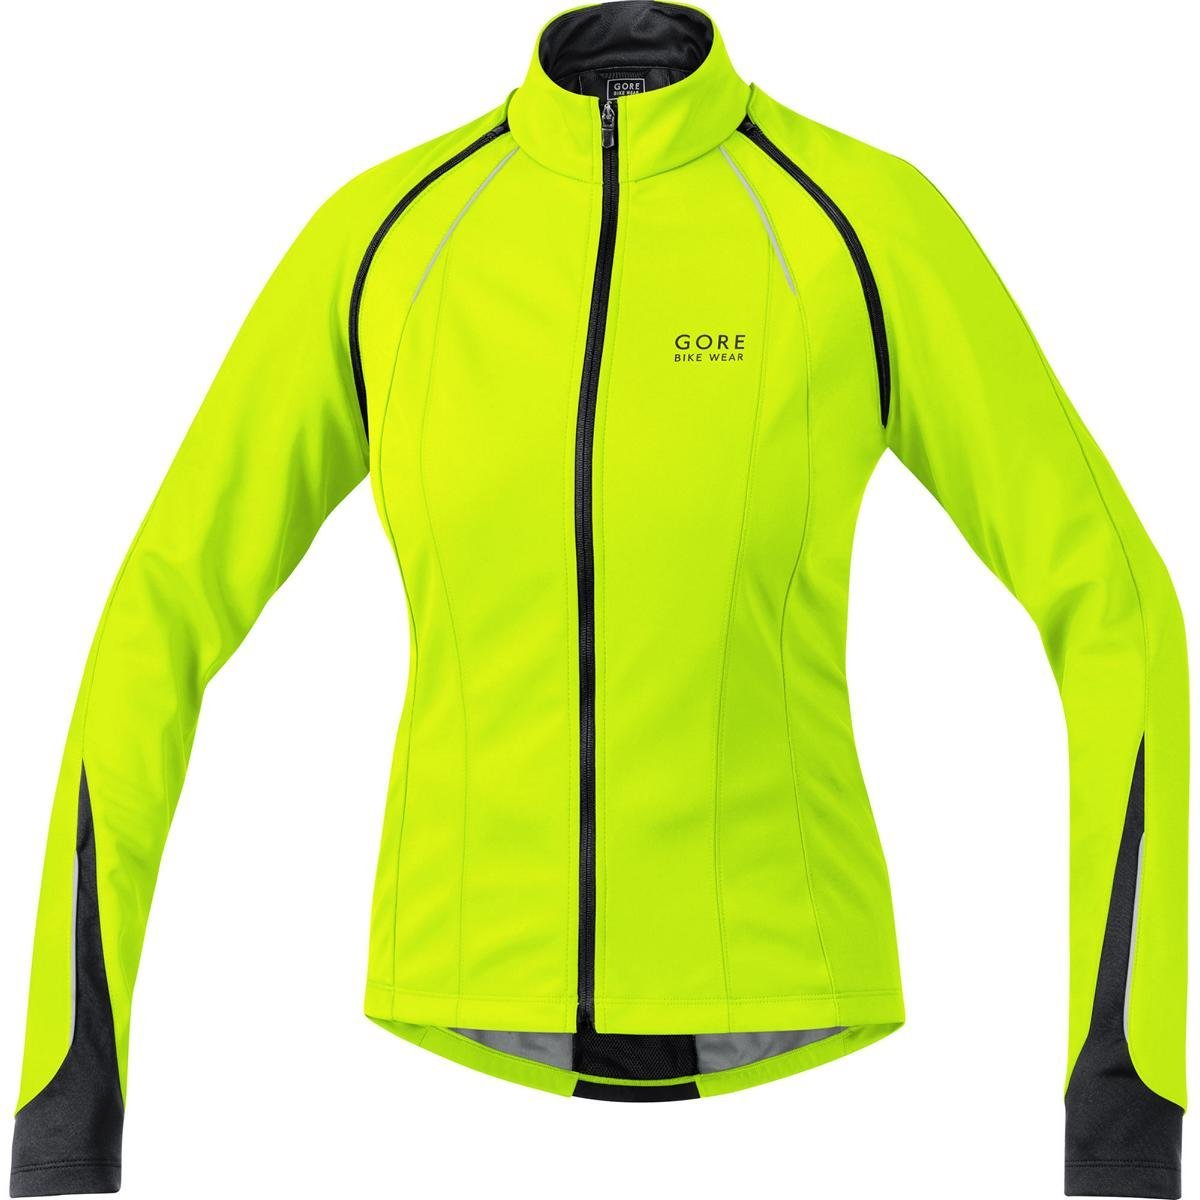 GORE BIKE WEAR 3 in 1 Women's Soft Shell Road Cycling Jacket, GORE WINDSTOPPER, PHANTOM LADY 2.0 WS SO Jacket, JWPHAL JWPHAL-2927-XXL